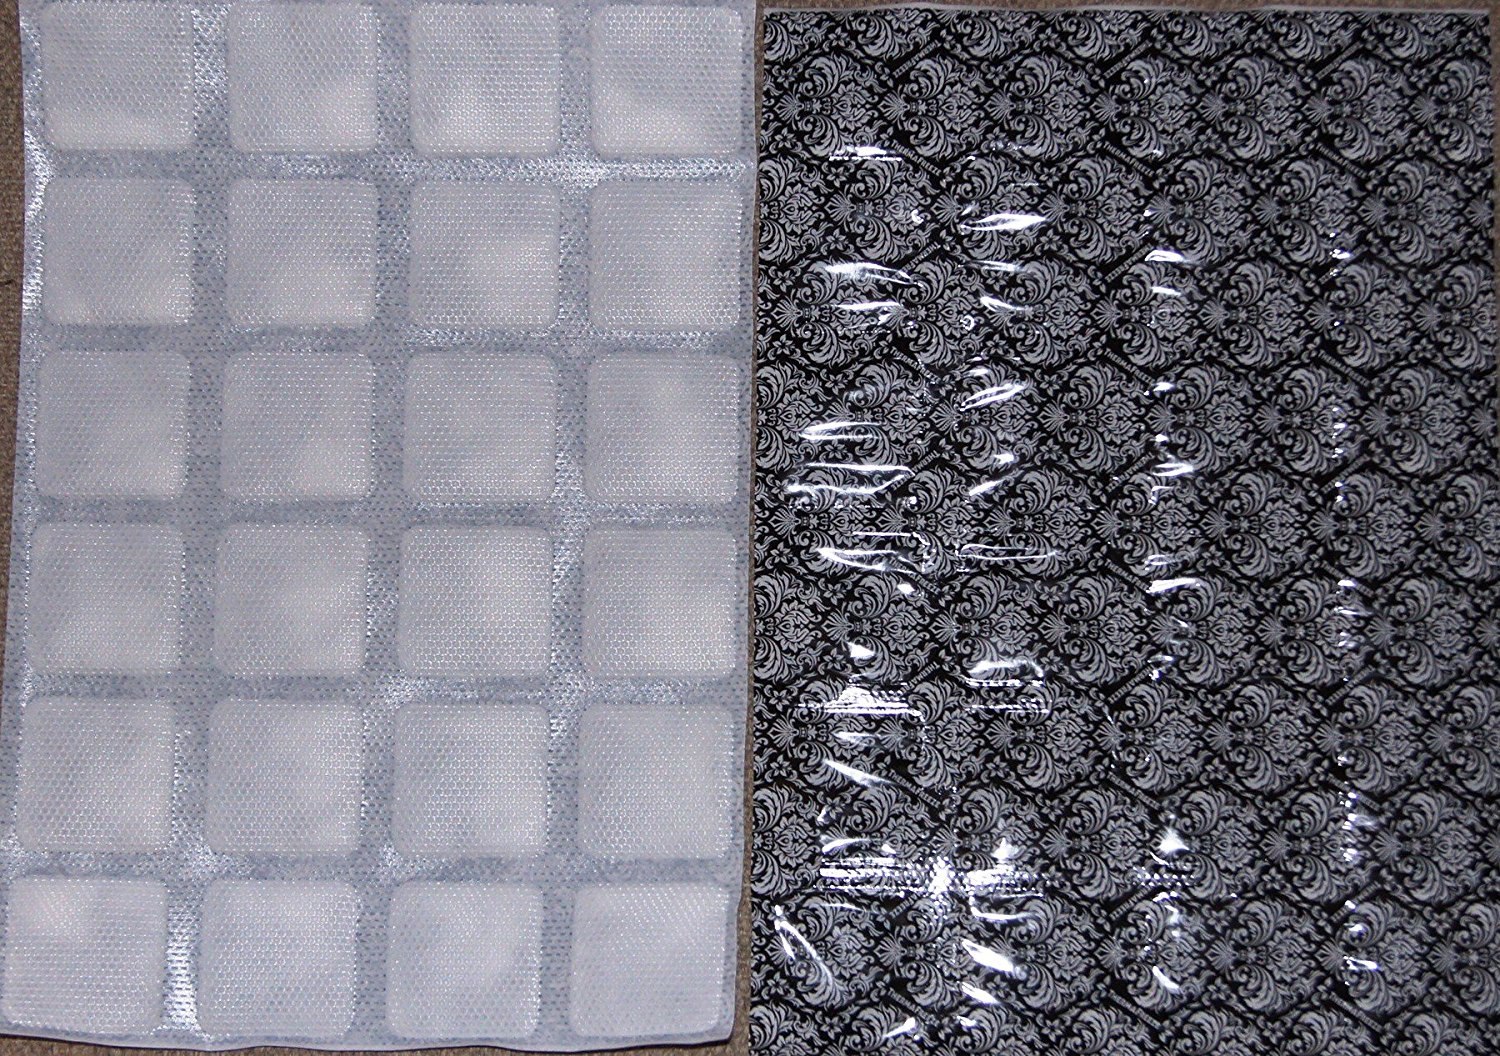 ThermaFreeze~30 Reusable LARGE Flexible ICE Cooler Sheets 4x3 cell; 7.5x10 inch